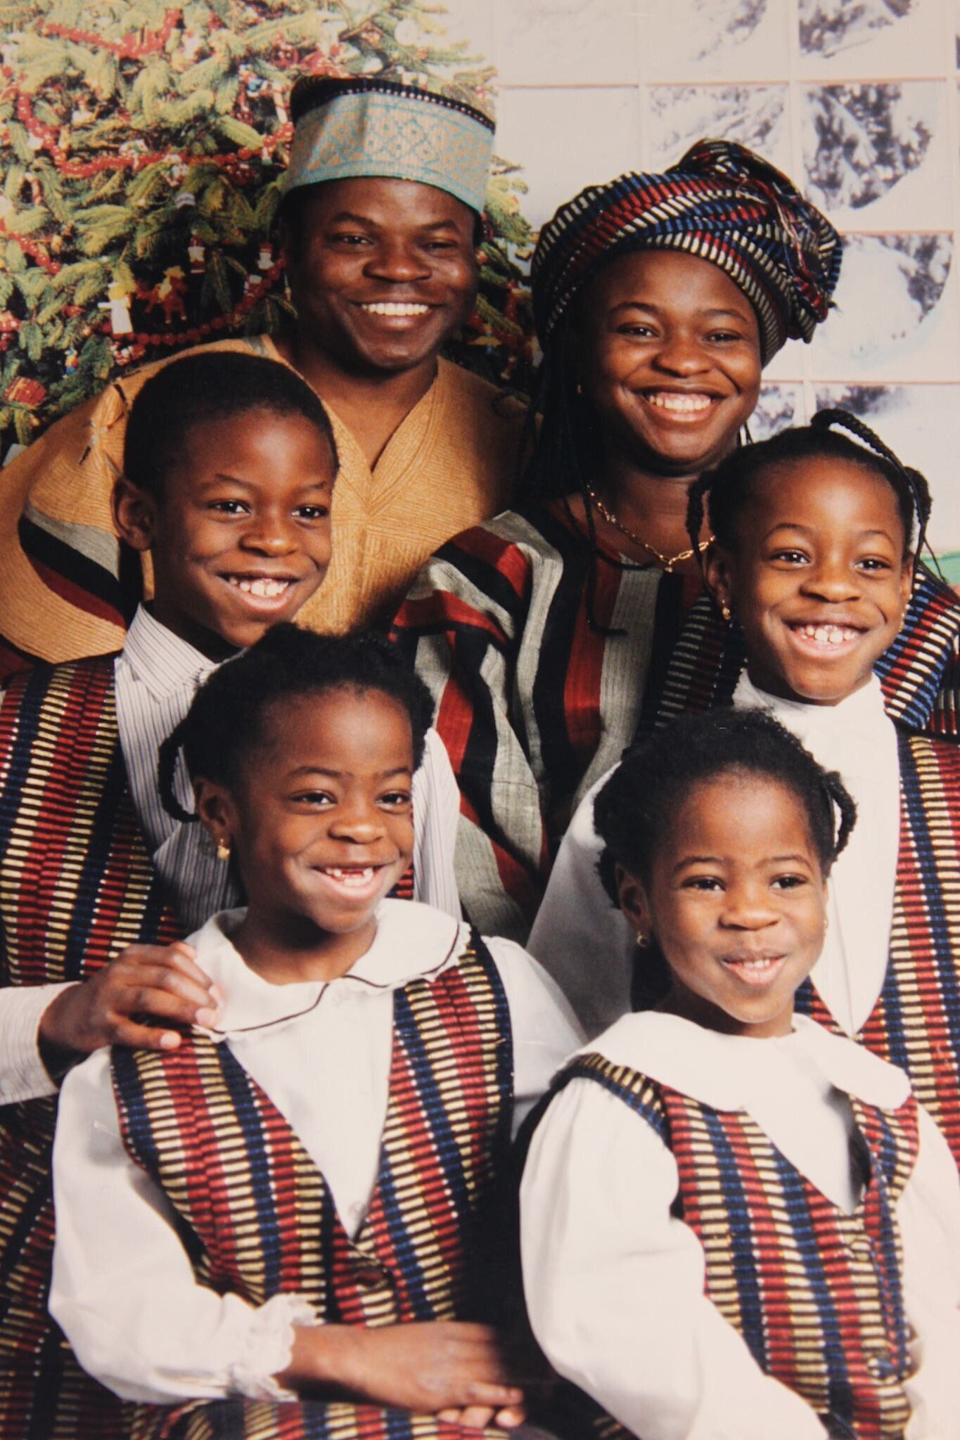 The writer's family wearing traditional Nigerian outfits. (Photo: Tomi Ajele)